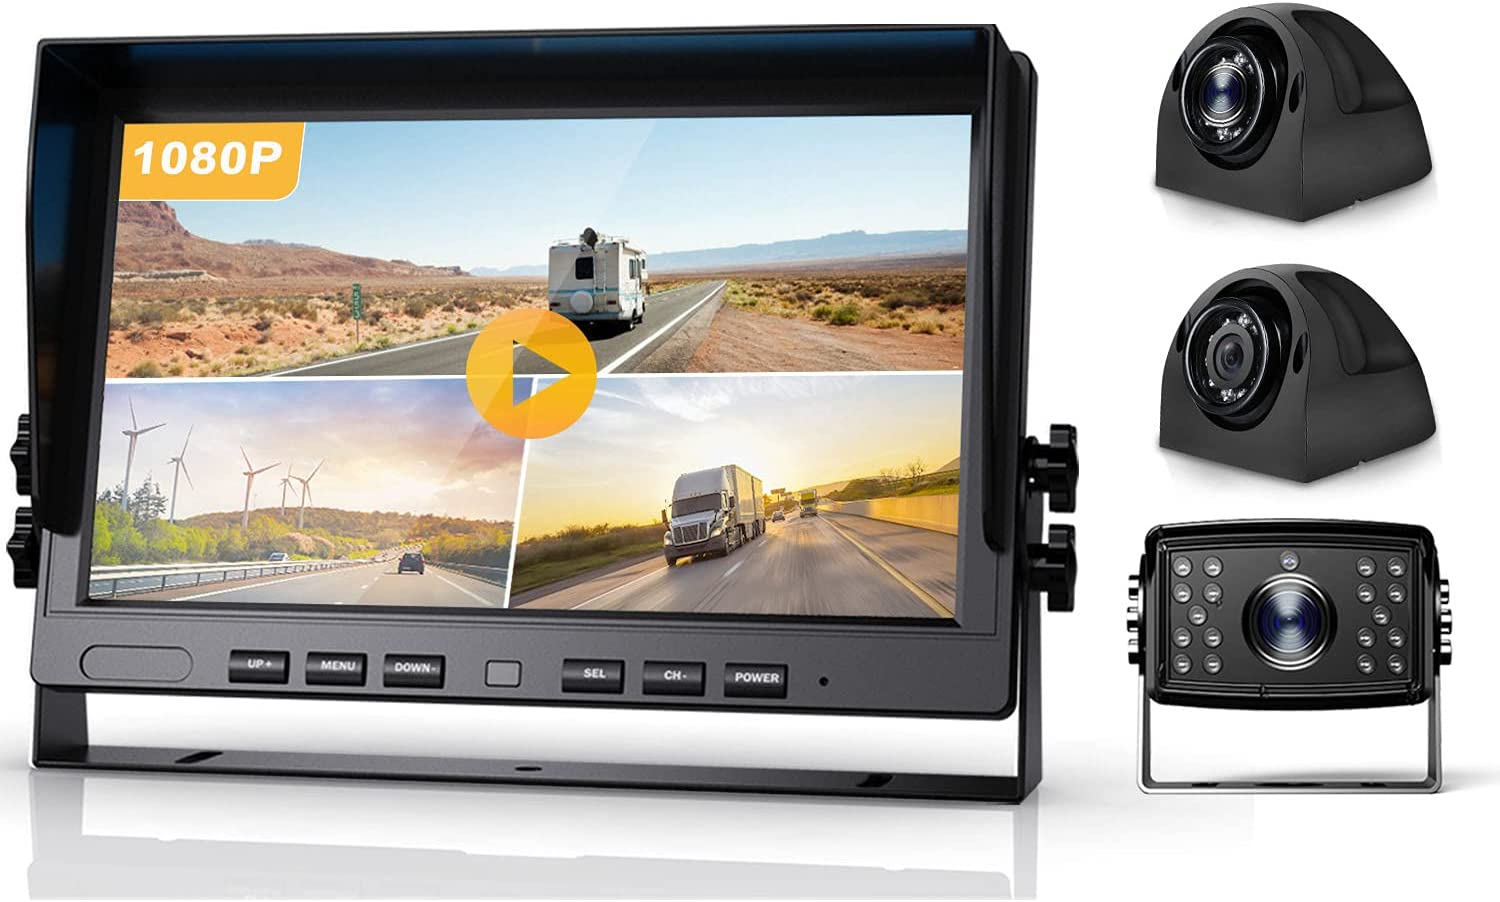 Fursom 10.2'' 1080P DVR Wired Backup Camera and HD Monitor Kit, Quad Split Screen, IP69 Waterproof Side View Camera x 2, Rear View Reverse Camera x 1 for Trailer, Van, RV, Camper, Tractor, Truck, Bus